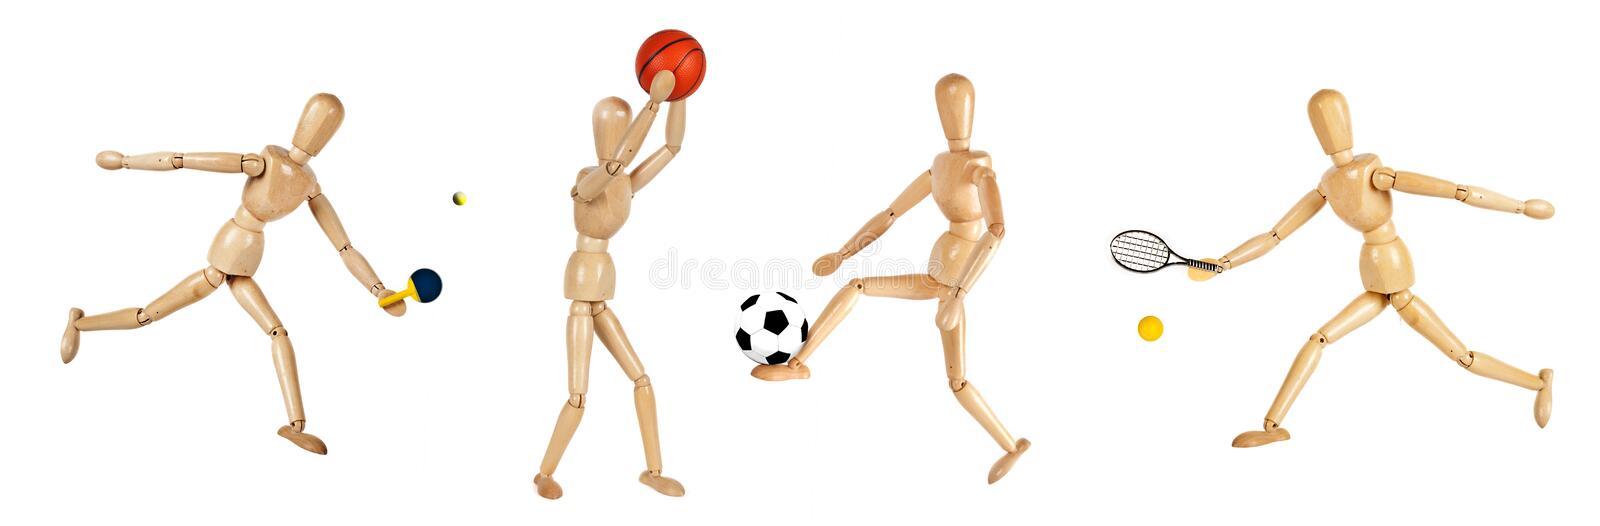 Wooden dummies playing sports stock image